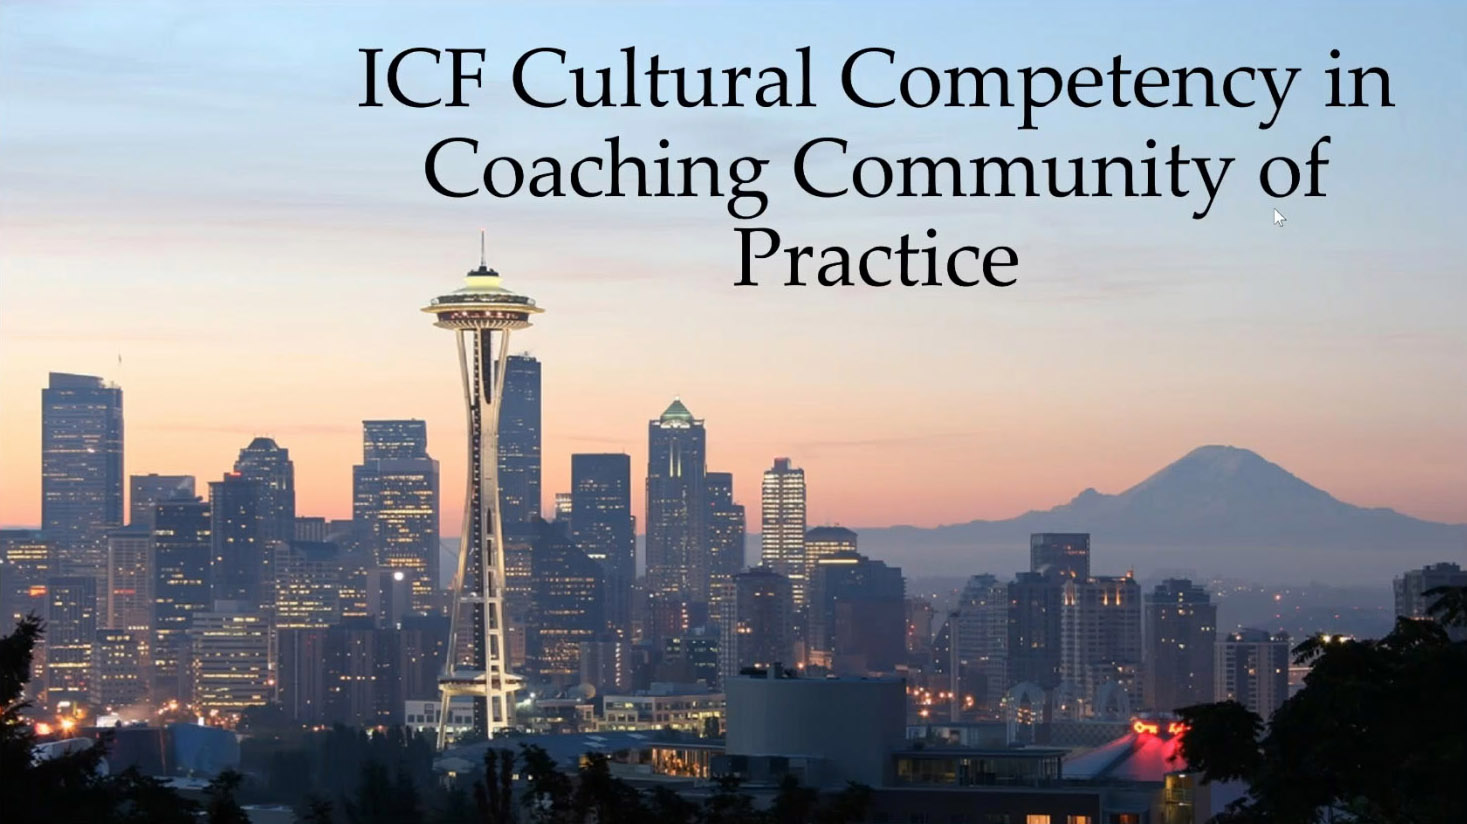 A Dynamic Communication Approach to Coaching in the Global Context